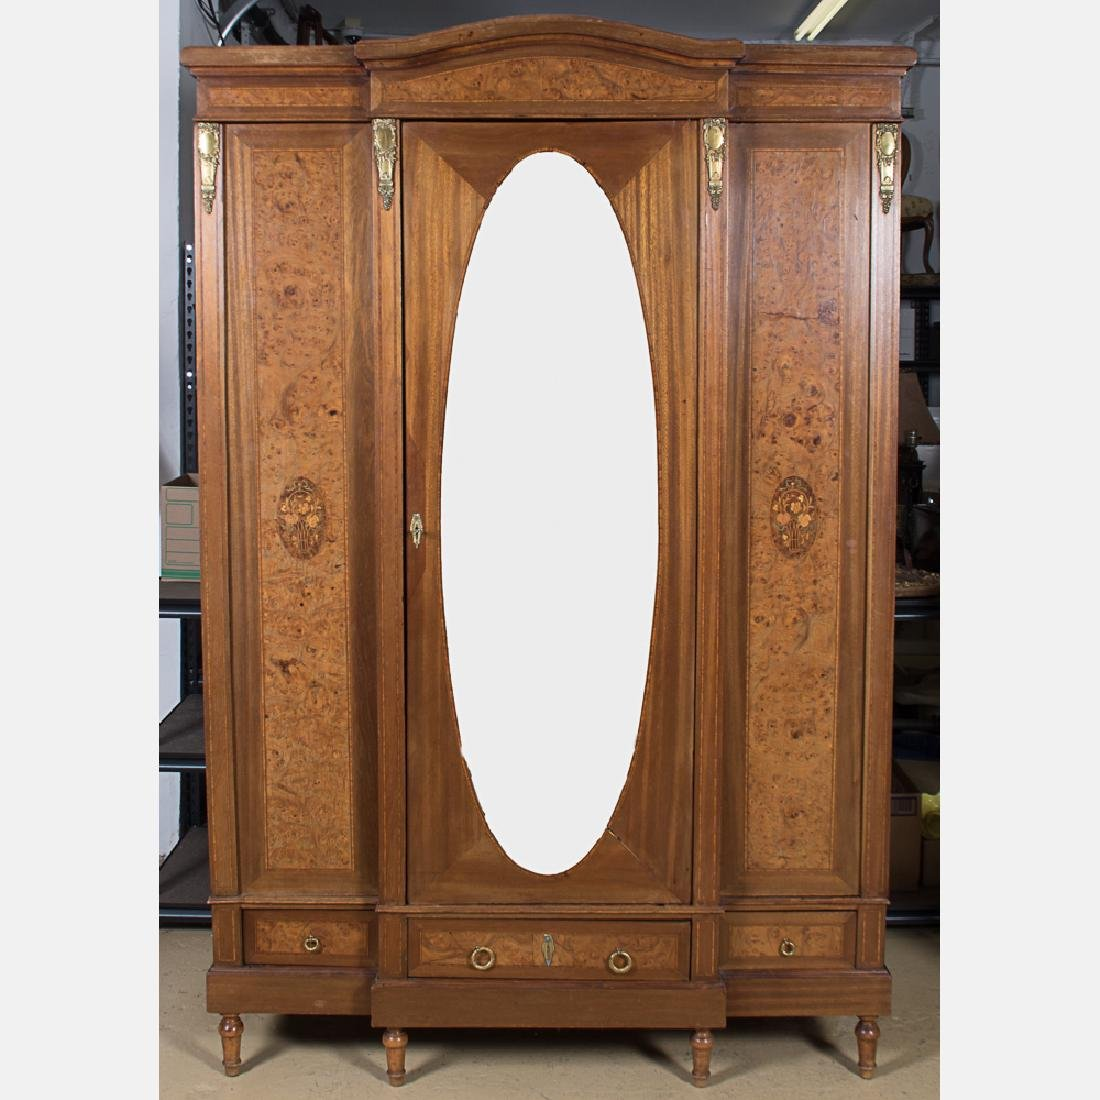 A Louis XVI Style Burlwood Armoire with Fruitwood